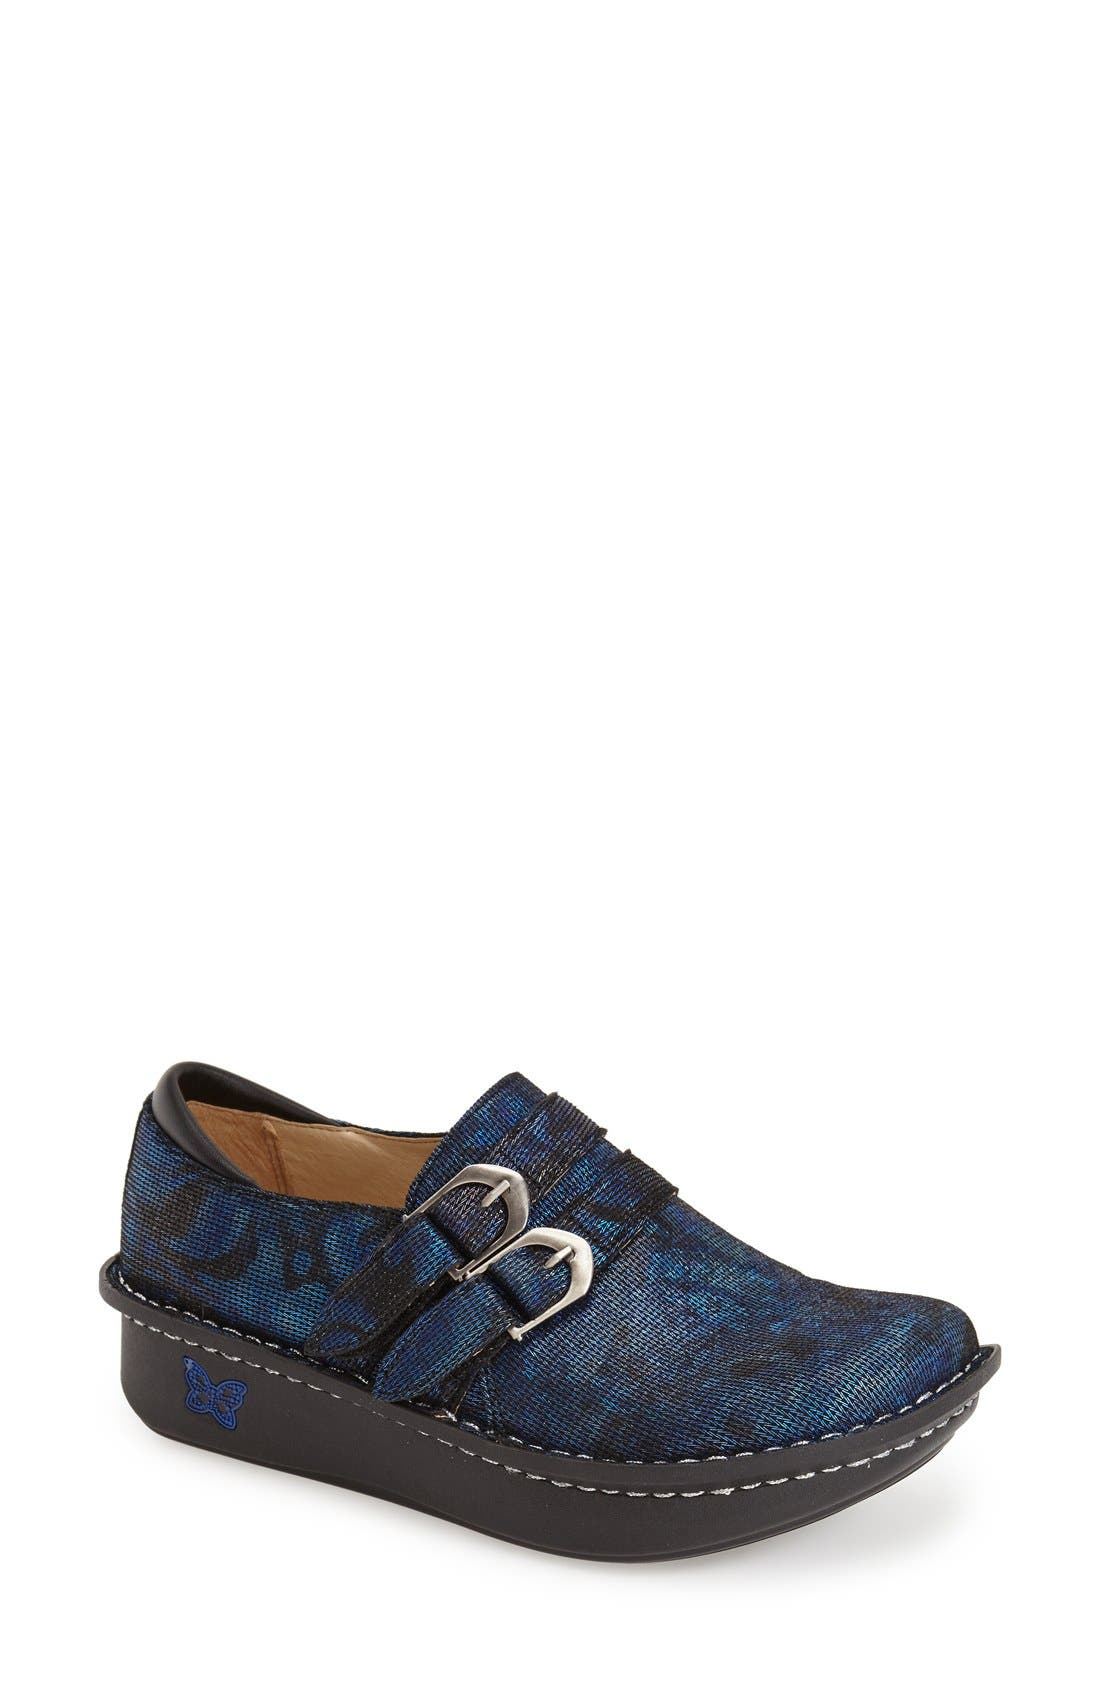 'Alli' Loafer,                             Main thumbnail 11, color,